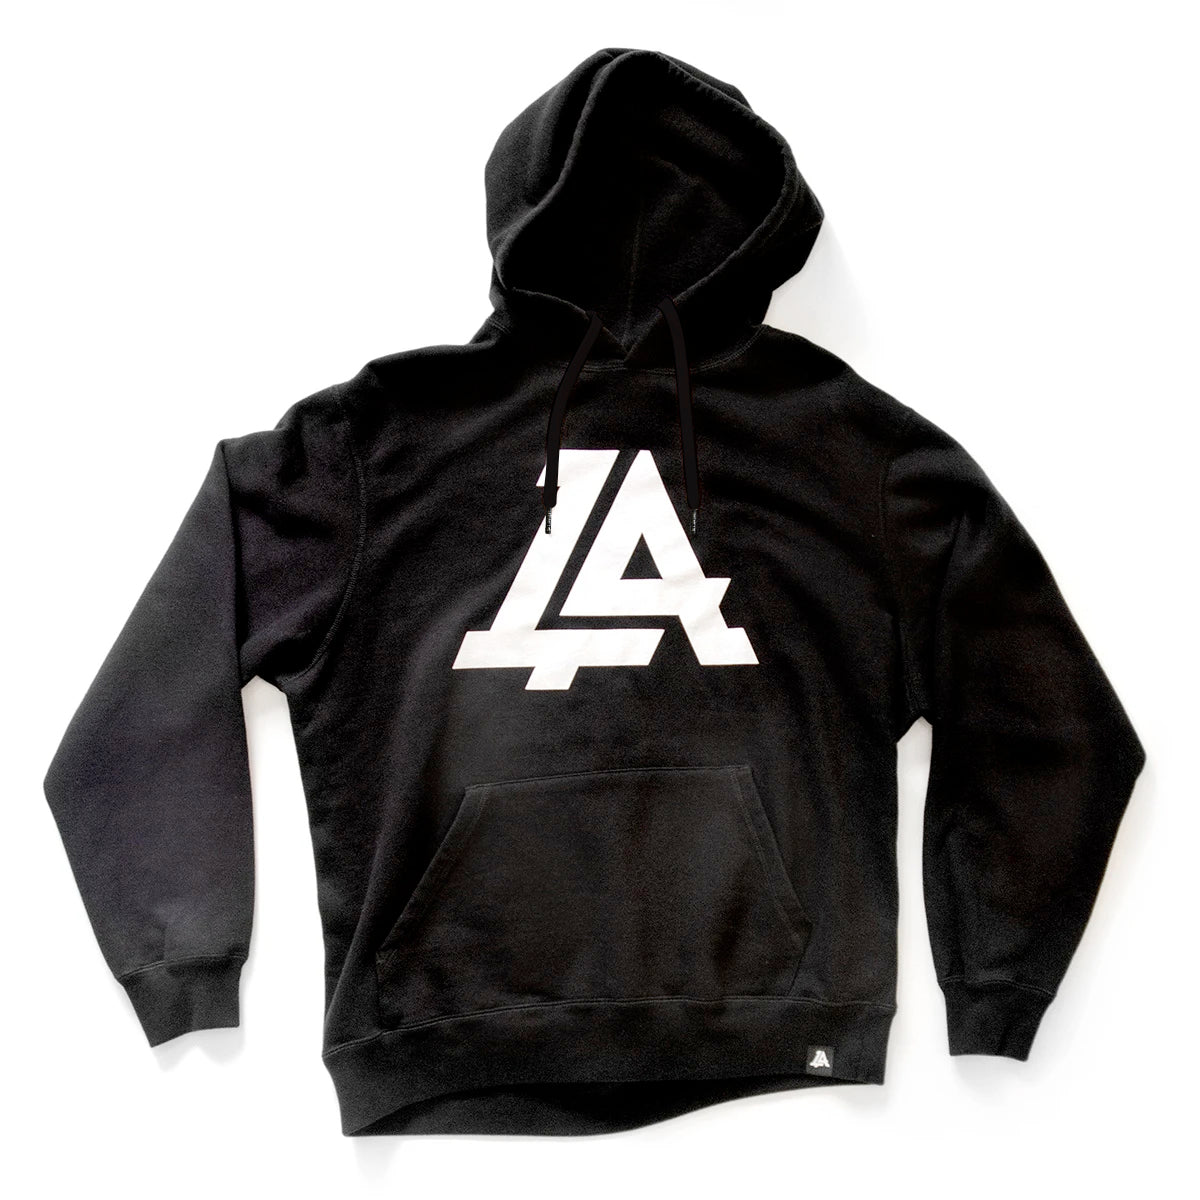 Lost Art Canada - black icon hoodie sweatshirt front view black strings